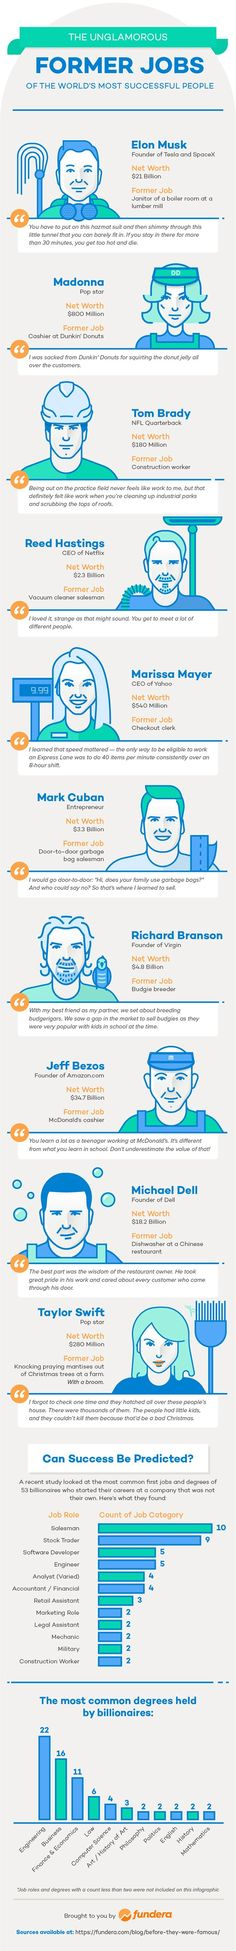 Before They Were Famous: Unglamorous First Jobs Of Successful People - #infographic